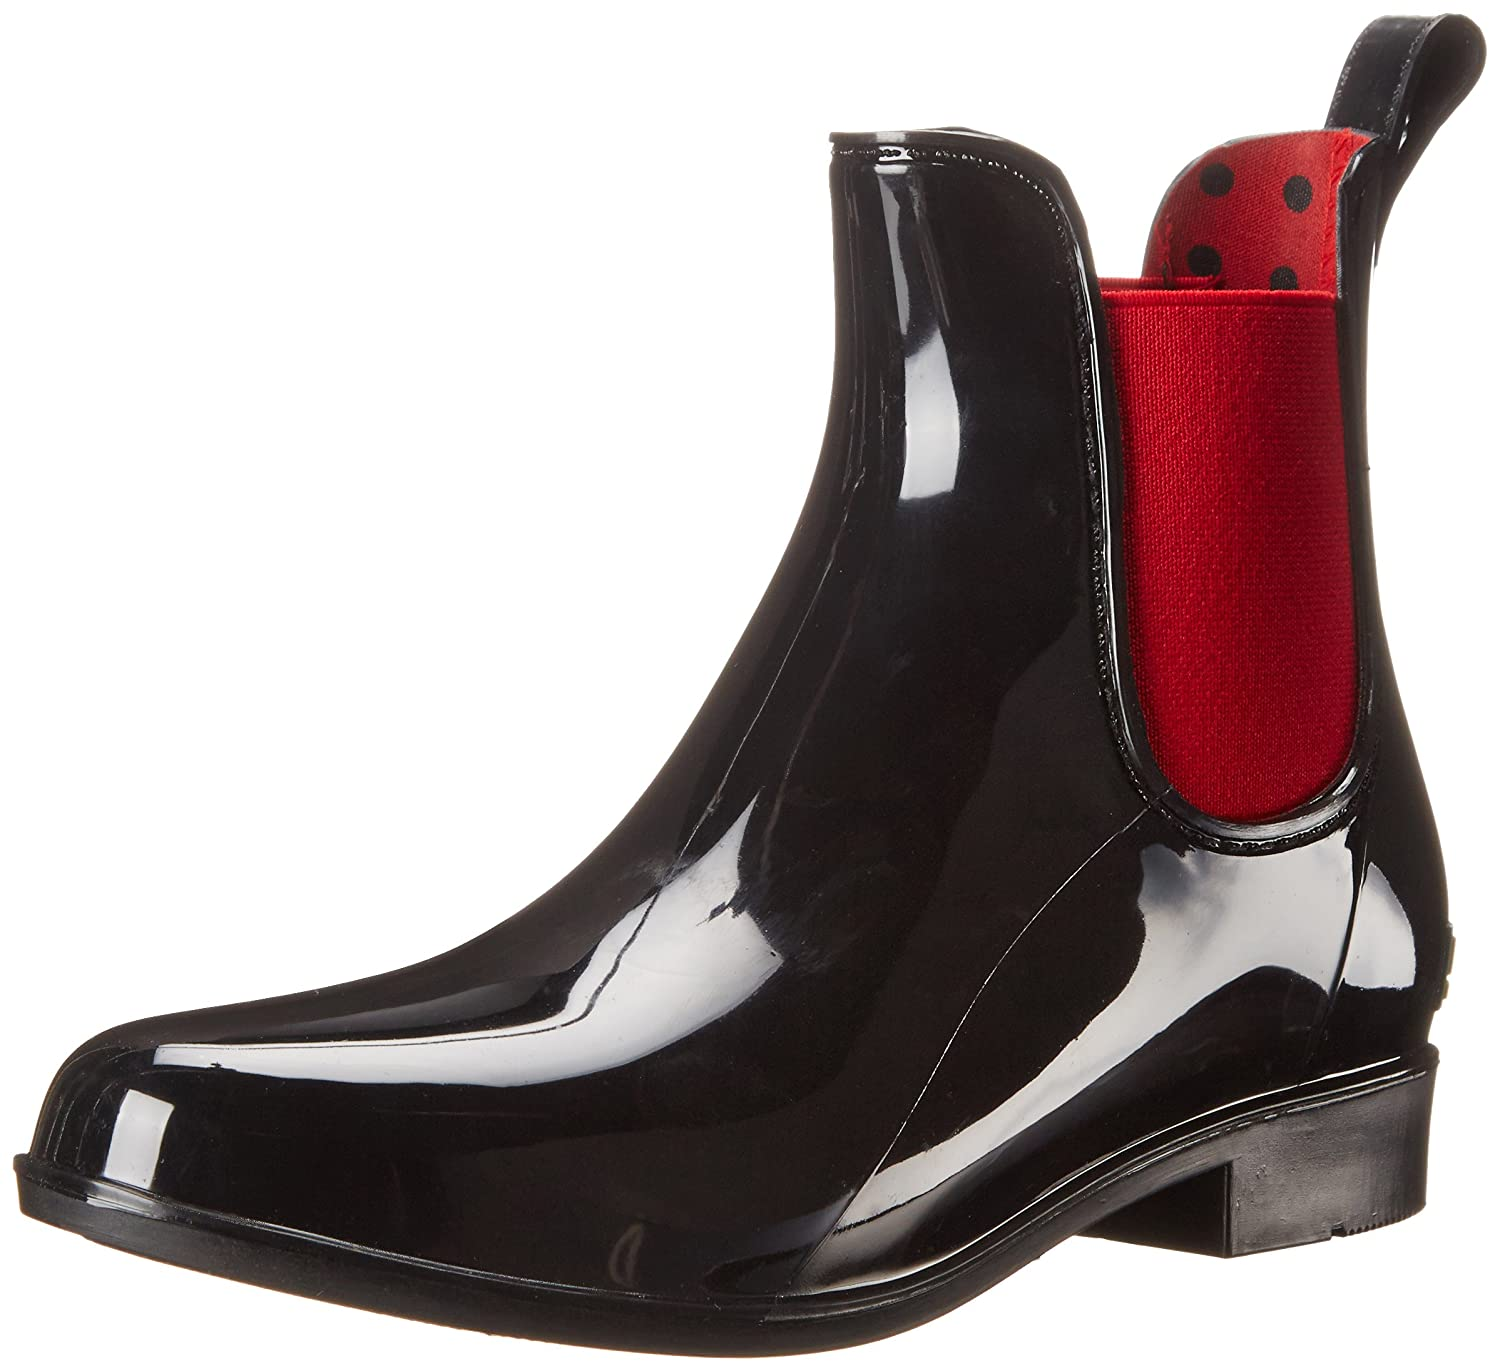 Lauren Ralph Lauren Women's Tally Rain Boot B00L3LOFWY 11 B(M) US|Black/Real Bright Red Solid Polyvinyl Chloride/Elastic